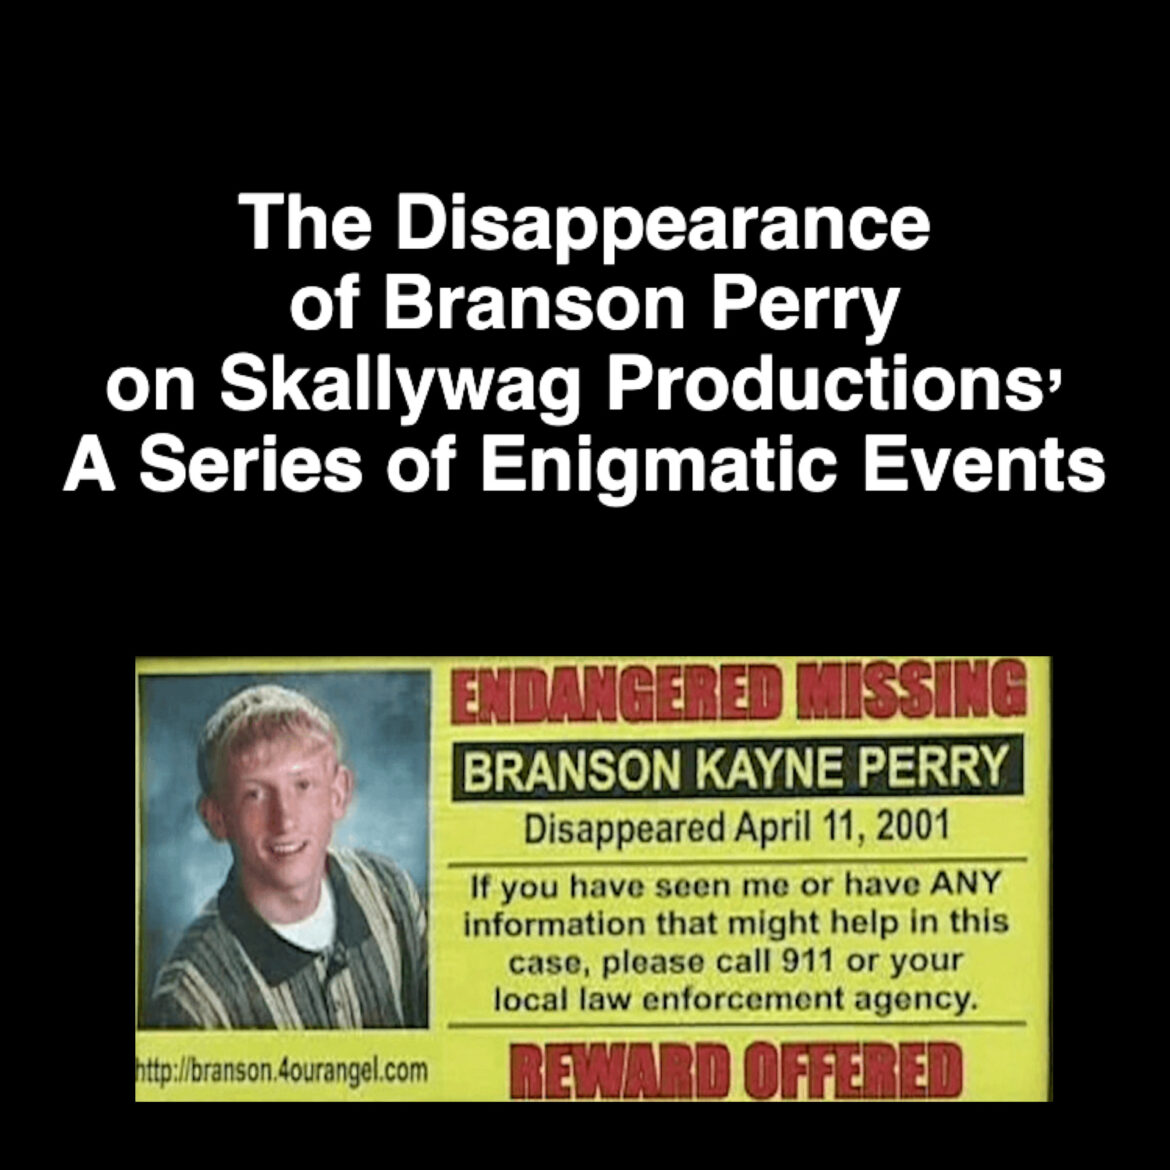 A Series of Enigmatic Events.. Branson Perry Disappearance